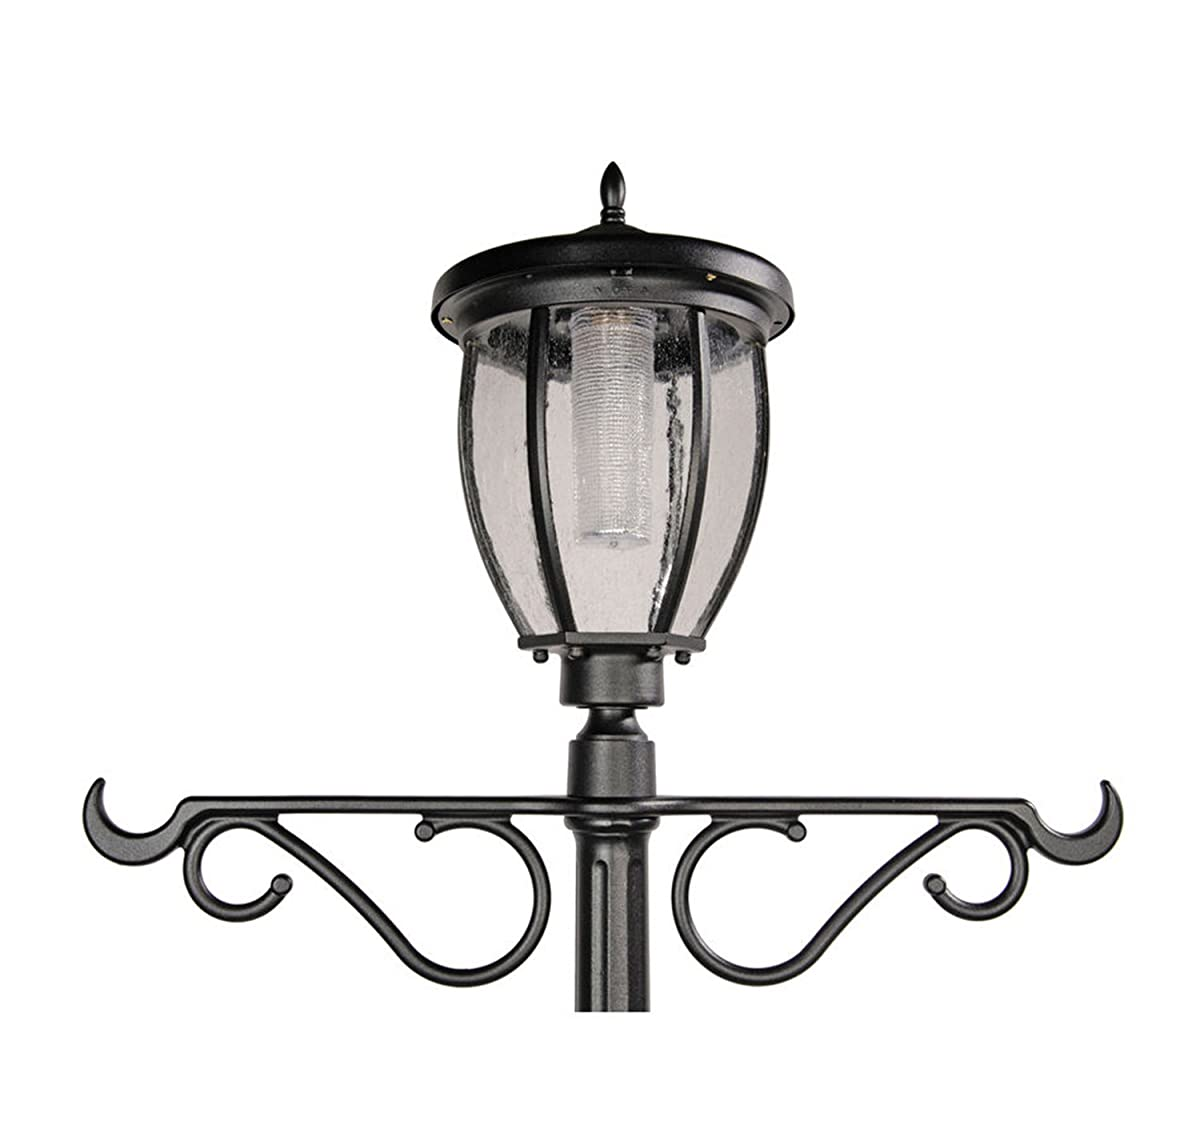 Nature Power 84in Tall Solar Powered LED Lamp Post with 18.5in. Planter